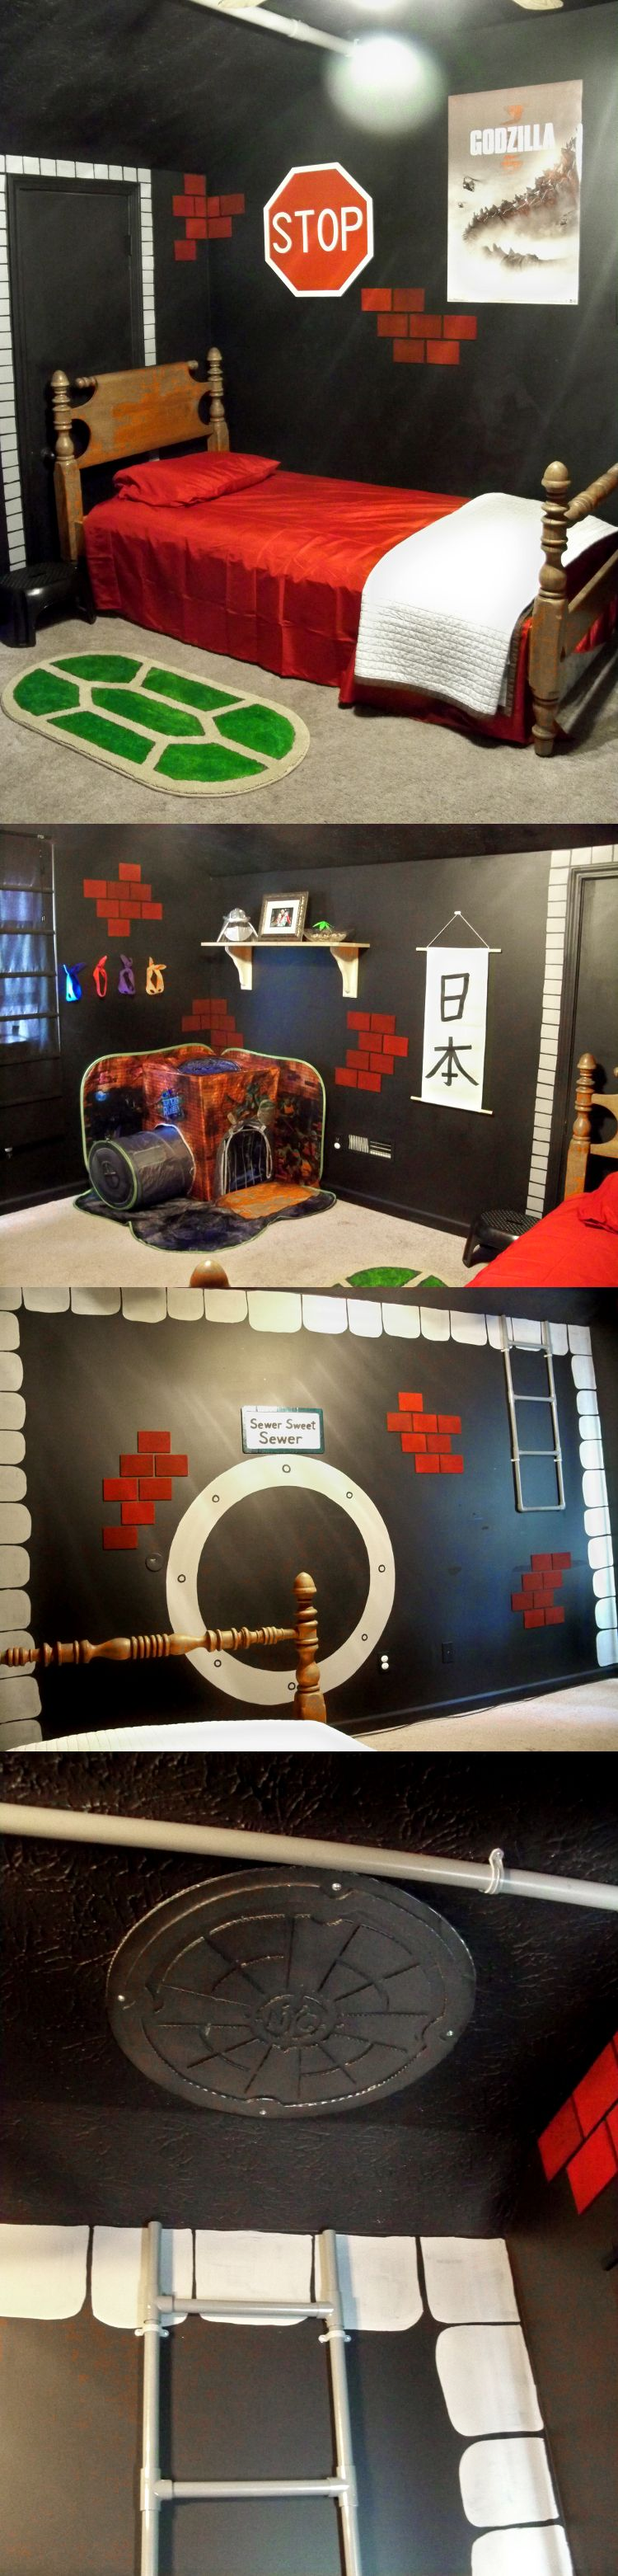 TMNT sewer lair bedroom for my nephew. Converted from a previously all black room. Still missing a few details, but mostly done.